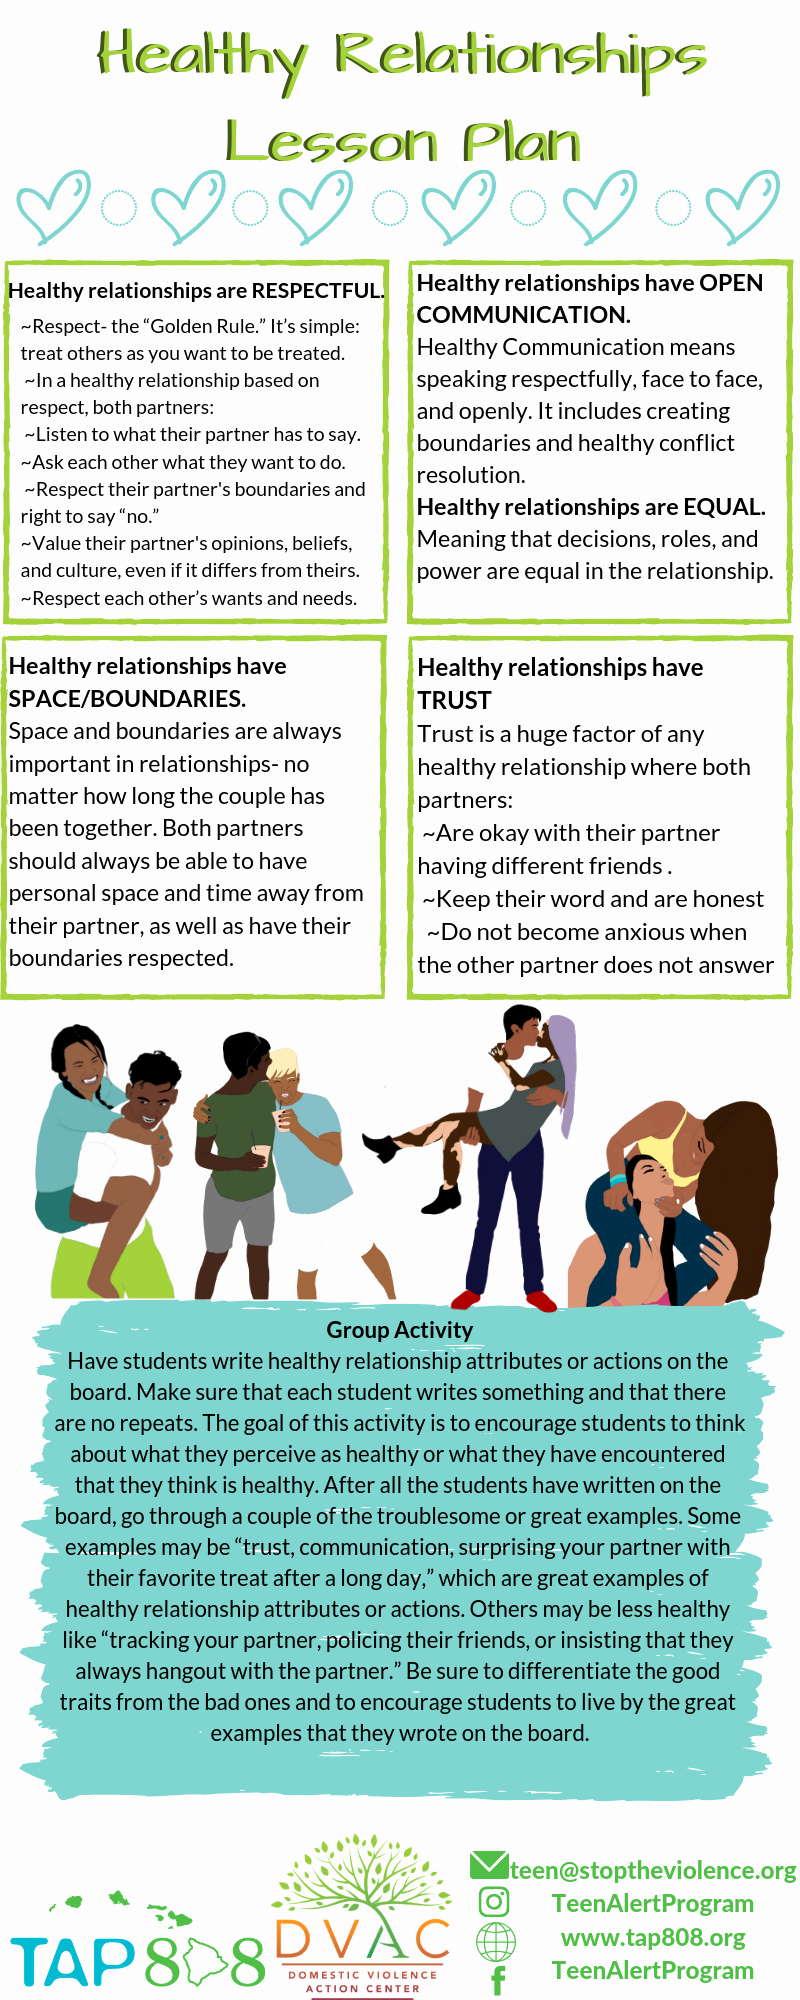 Healthy Relationships Worksheets Awesome Use This Lesson Plan In Your Classroom to Discuss Healthy